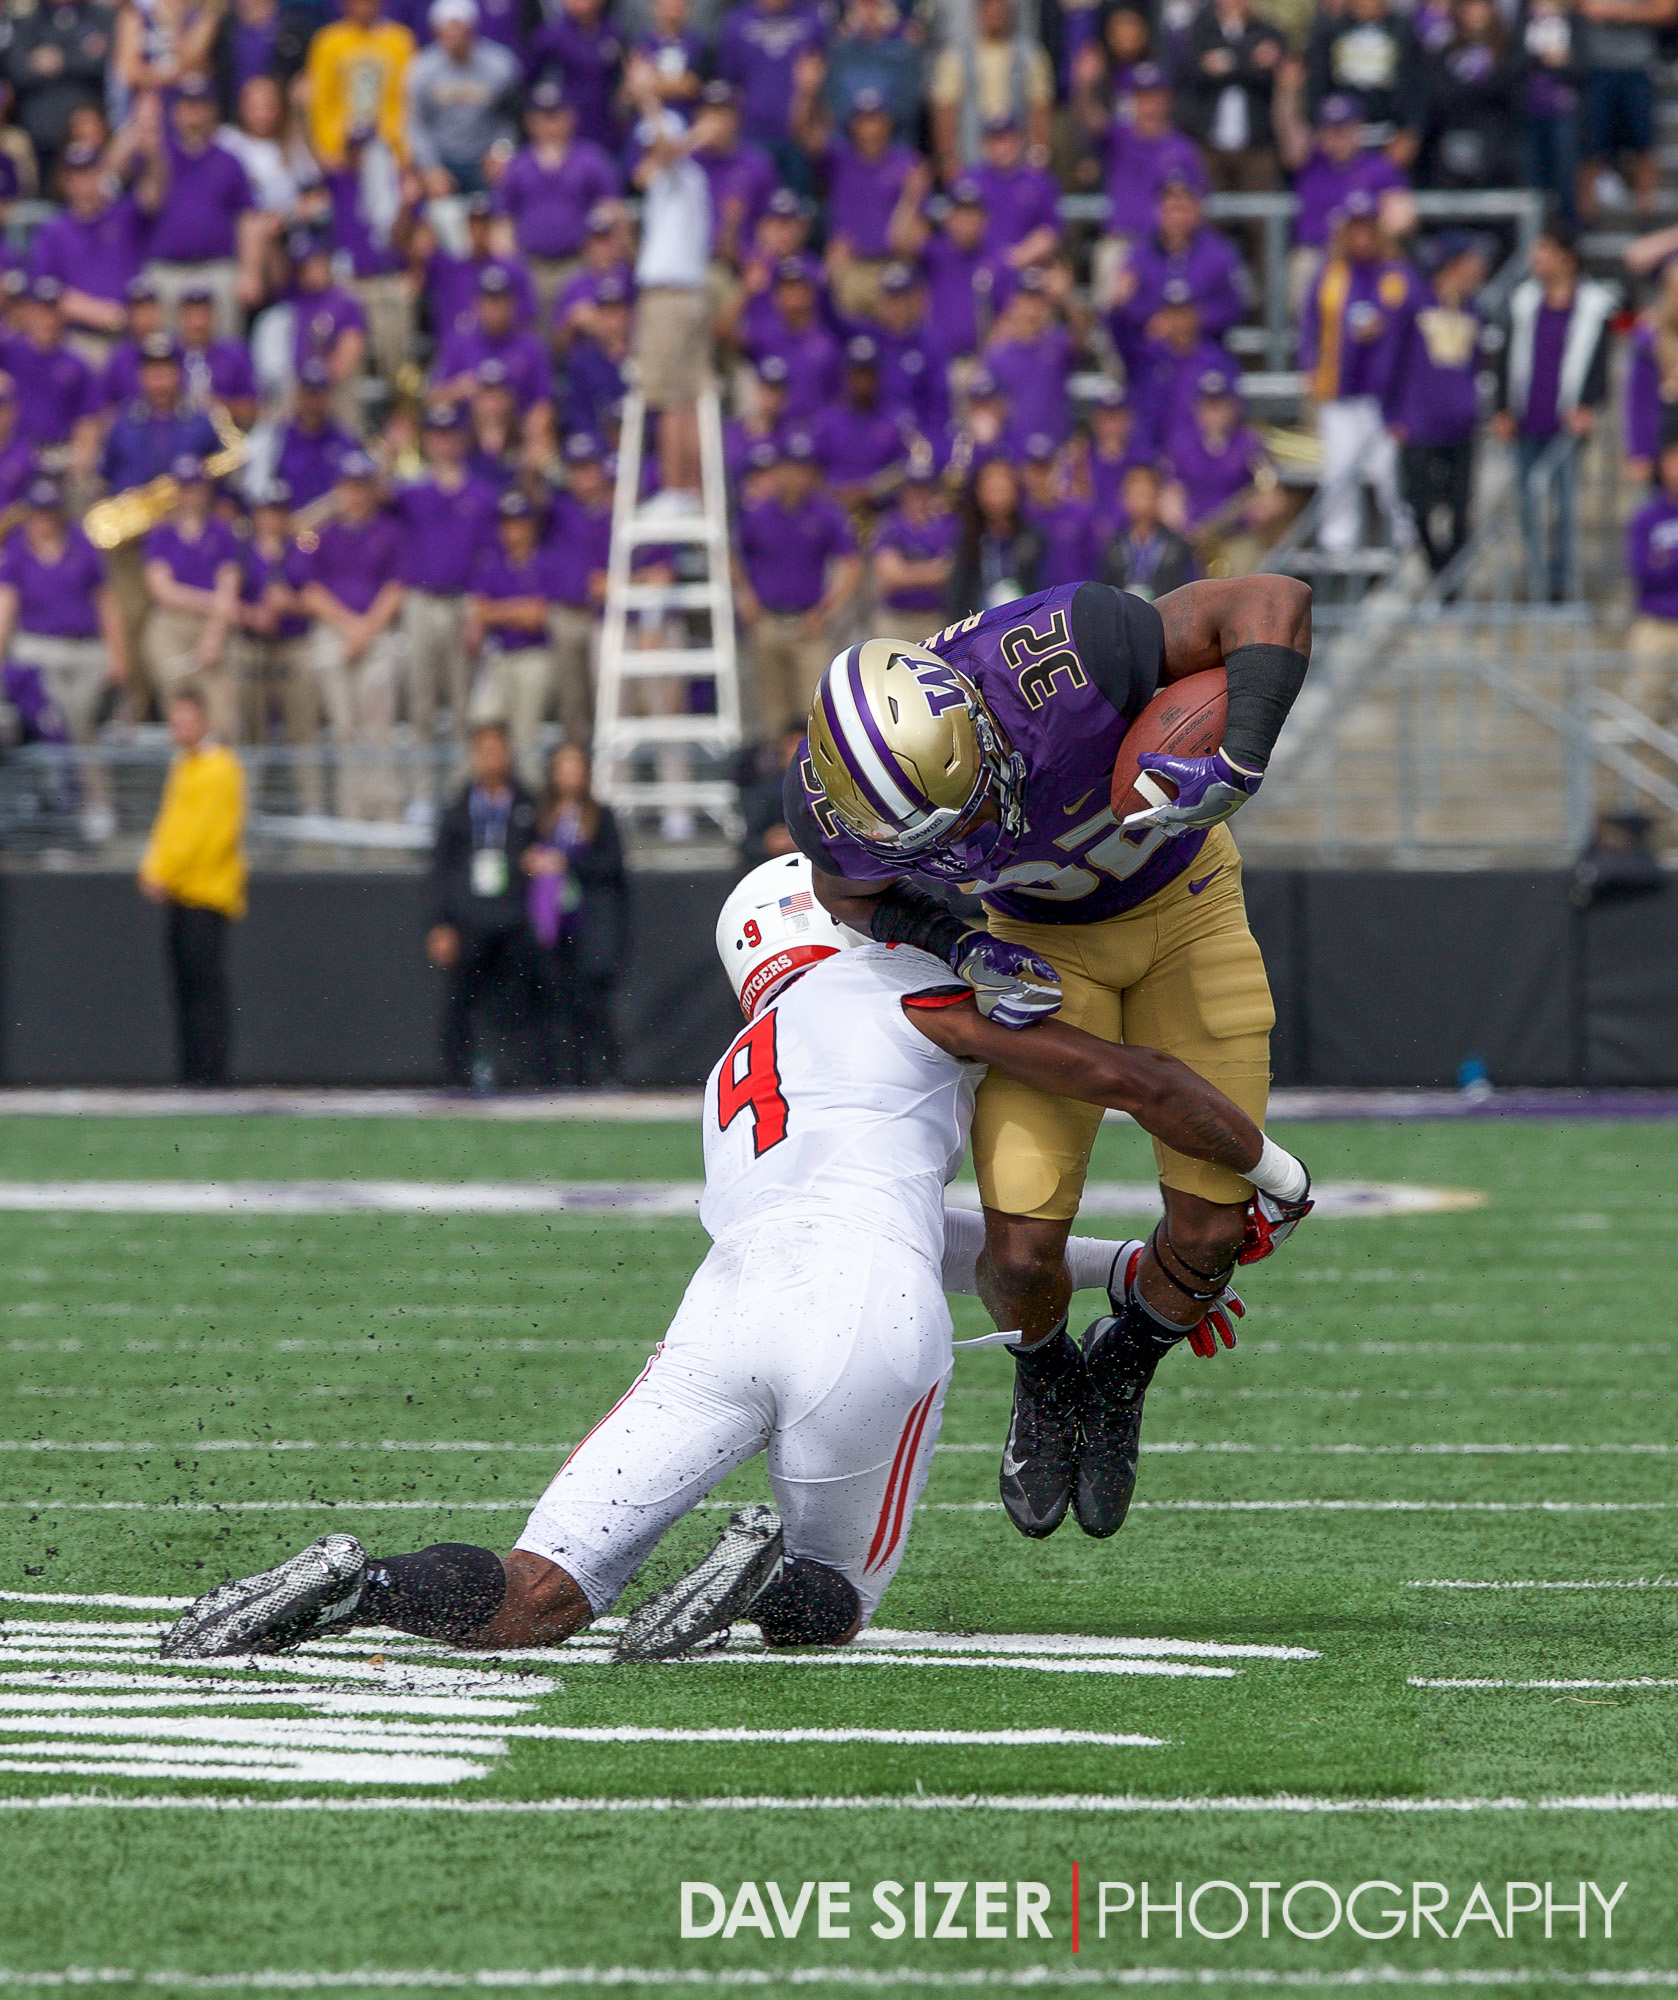 Budda Baker took a snap on the offense.